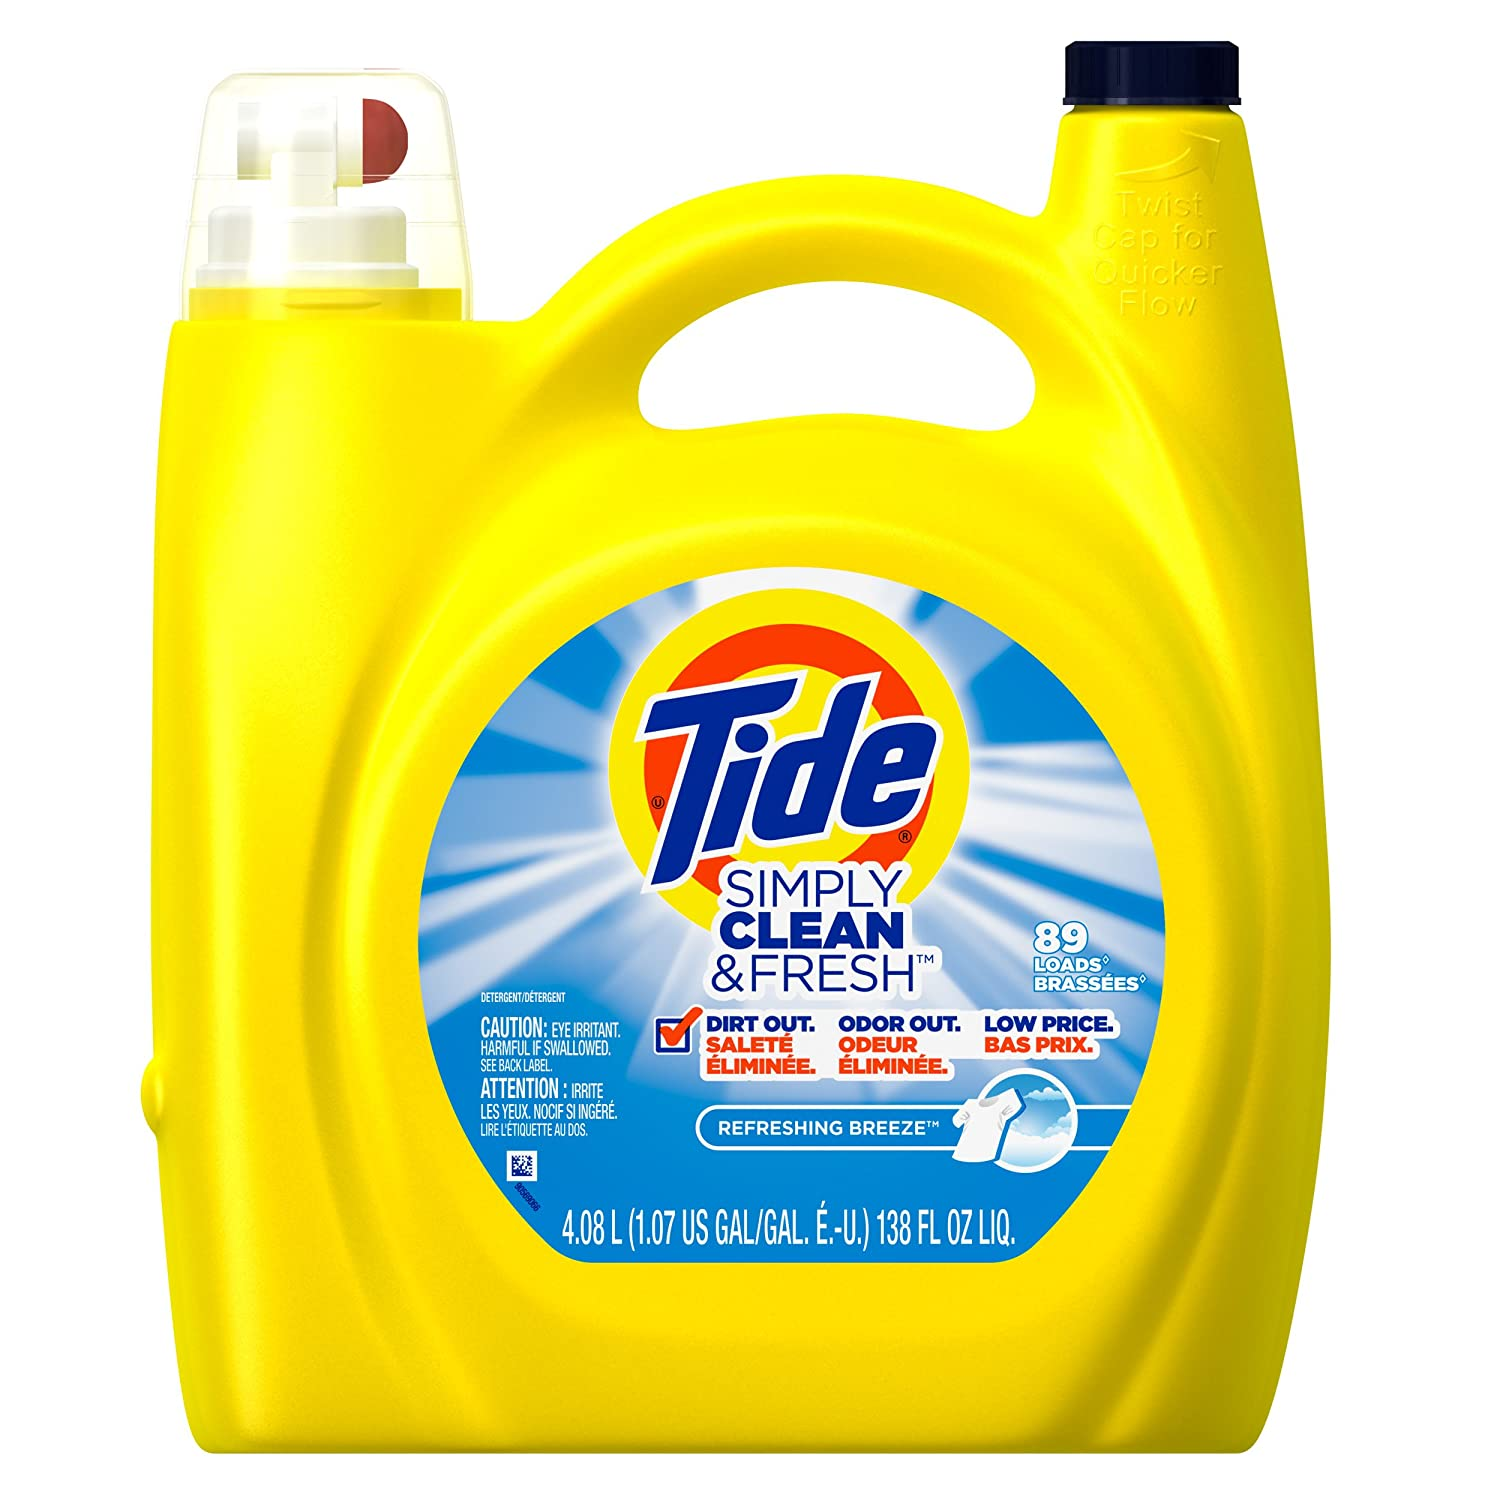 Tide Simply Clean & Fresh Refreshing Breeze Liquid Laundry Detergent, 138 Fl Oz (1) (1)